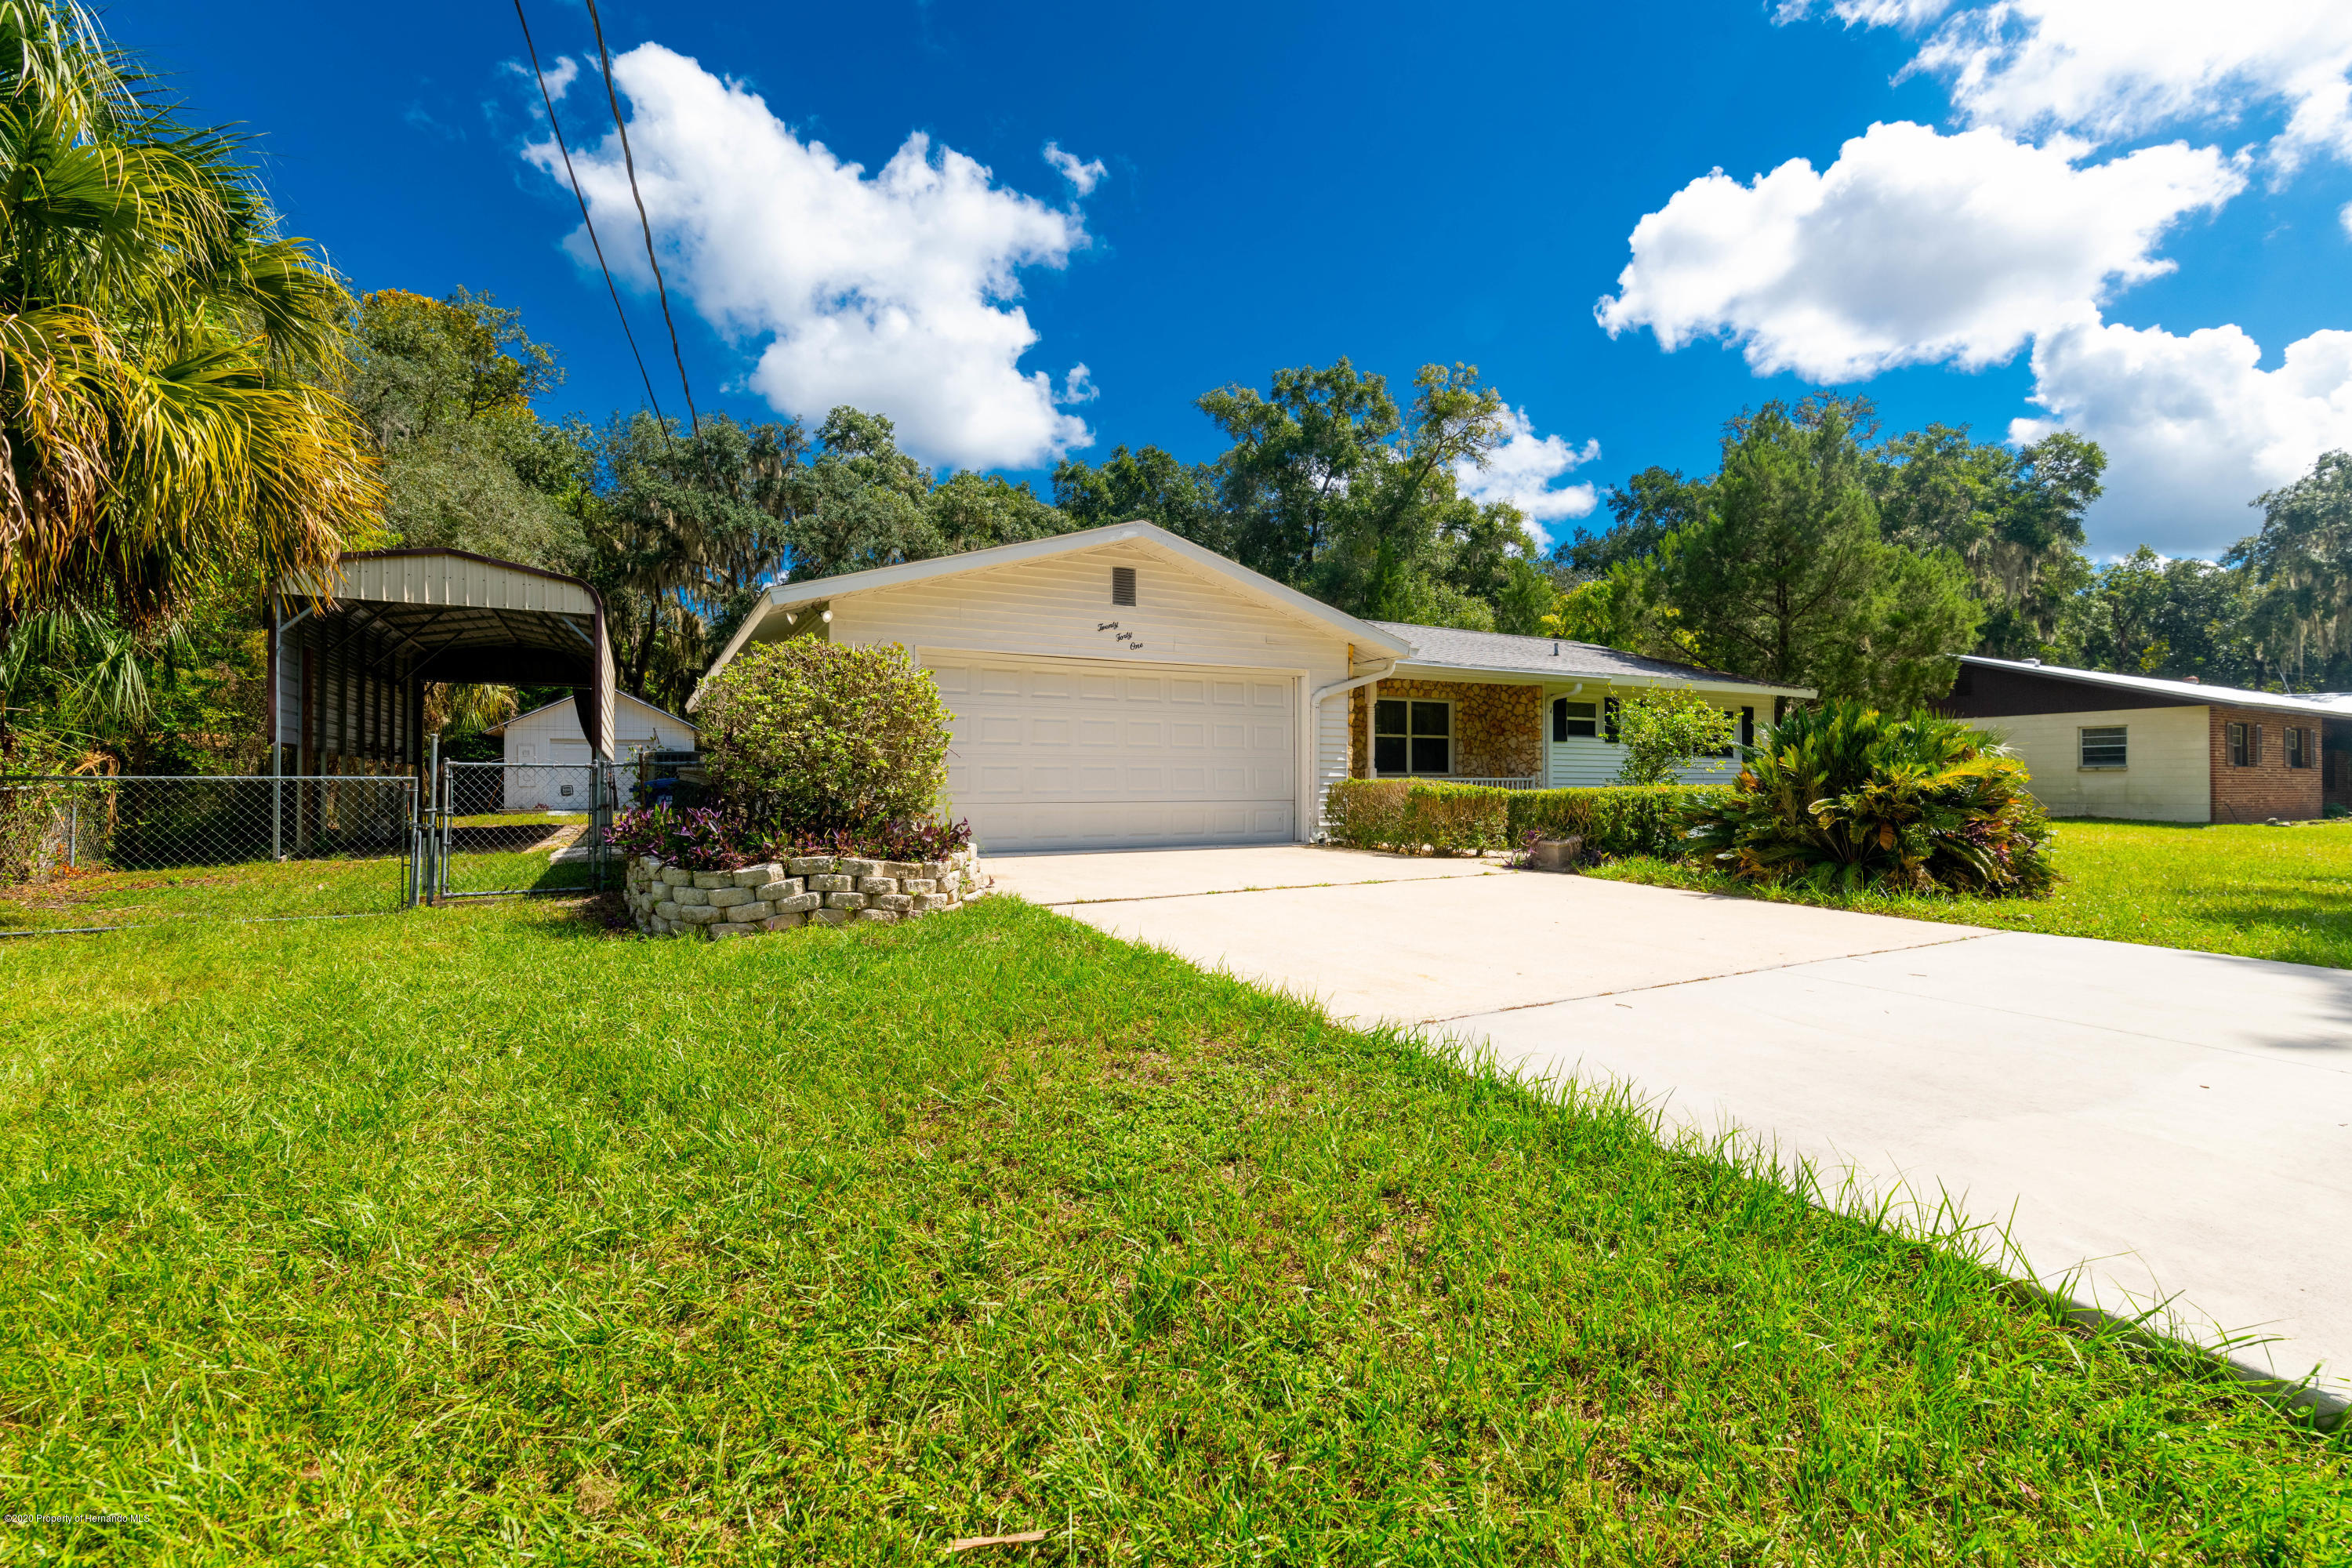 Lisitng Image number6 for 2041 Nw 15th Court